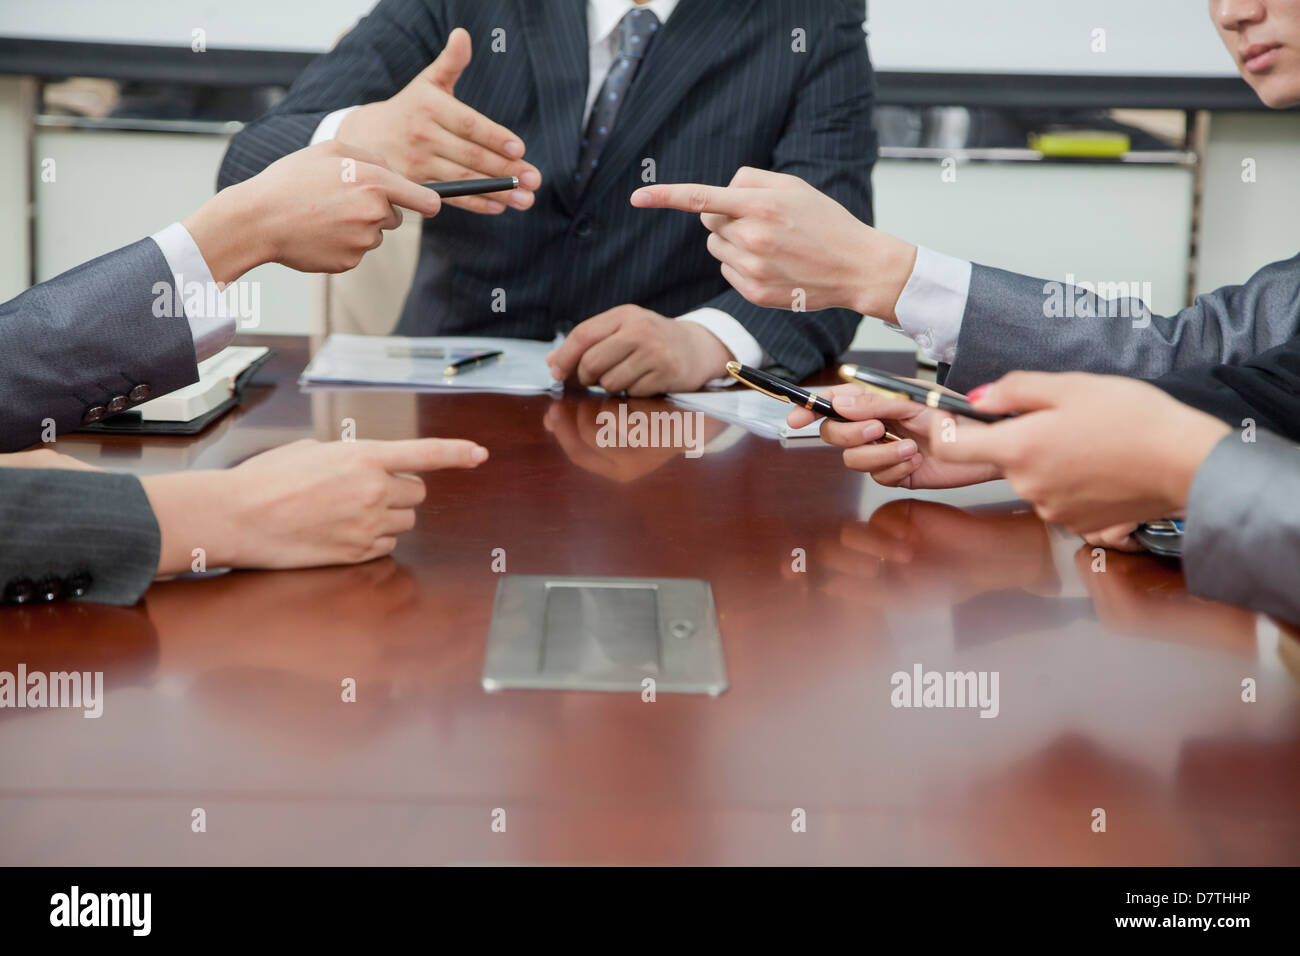 Businesspeople Making Gestures During Business Meeting Stock Photo